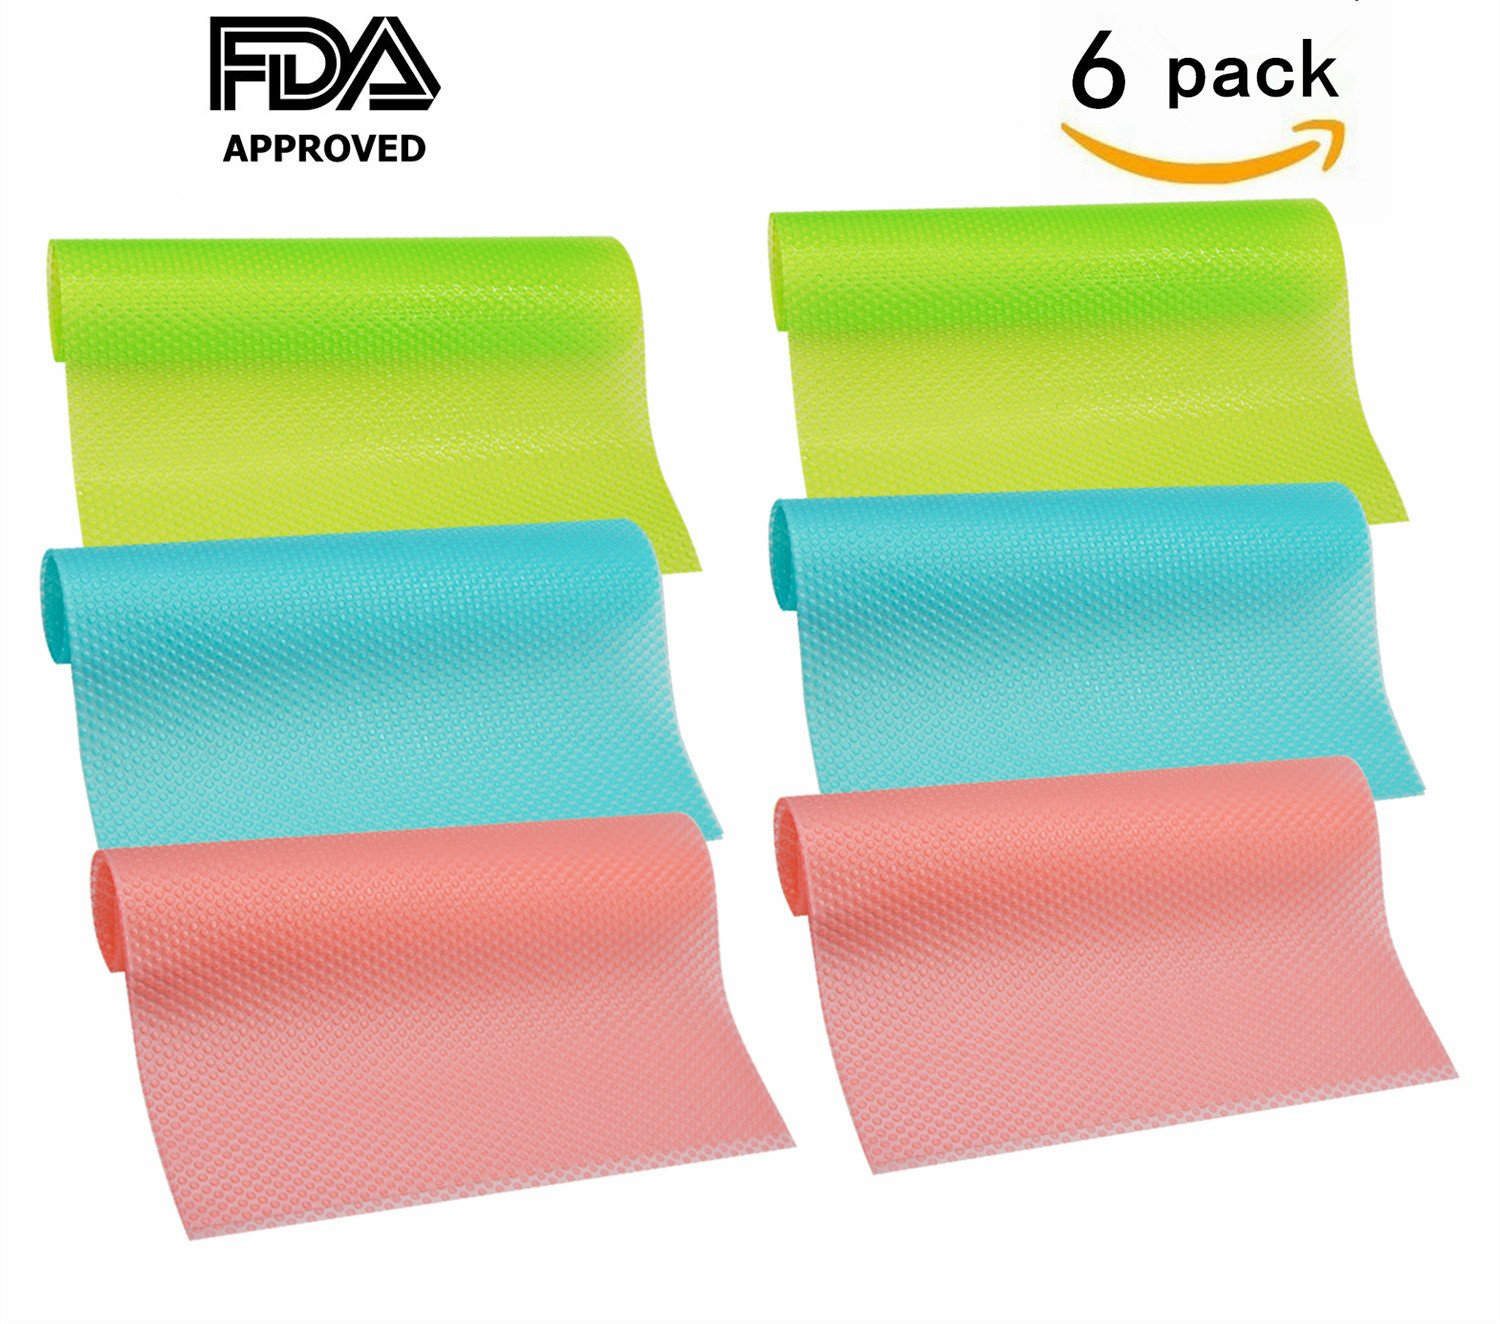 6 Pack Refrigerator Mats, HityTech Can Be Cut Refrigerator Liners Mats Anti-bacterial Anti-frost Waterproof Fridge Pads Shelves Drawer Table Mats -2 Red/2 Green/2 Blue 17 3/4 x 11 3/4 x 1/16 IN